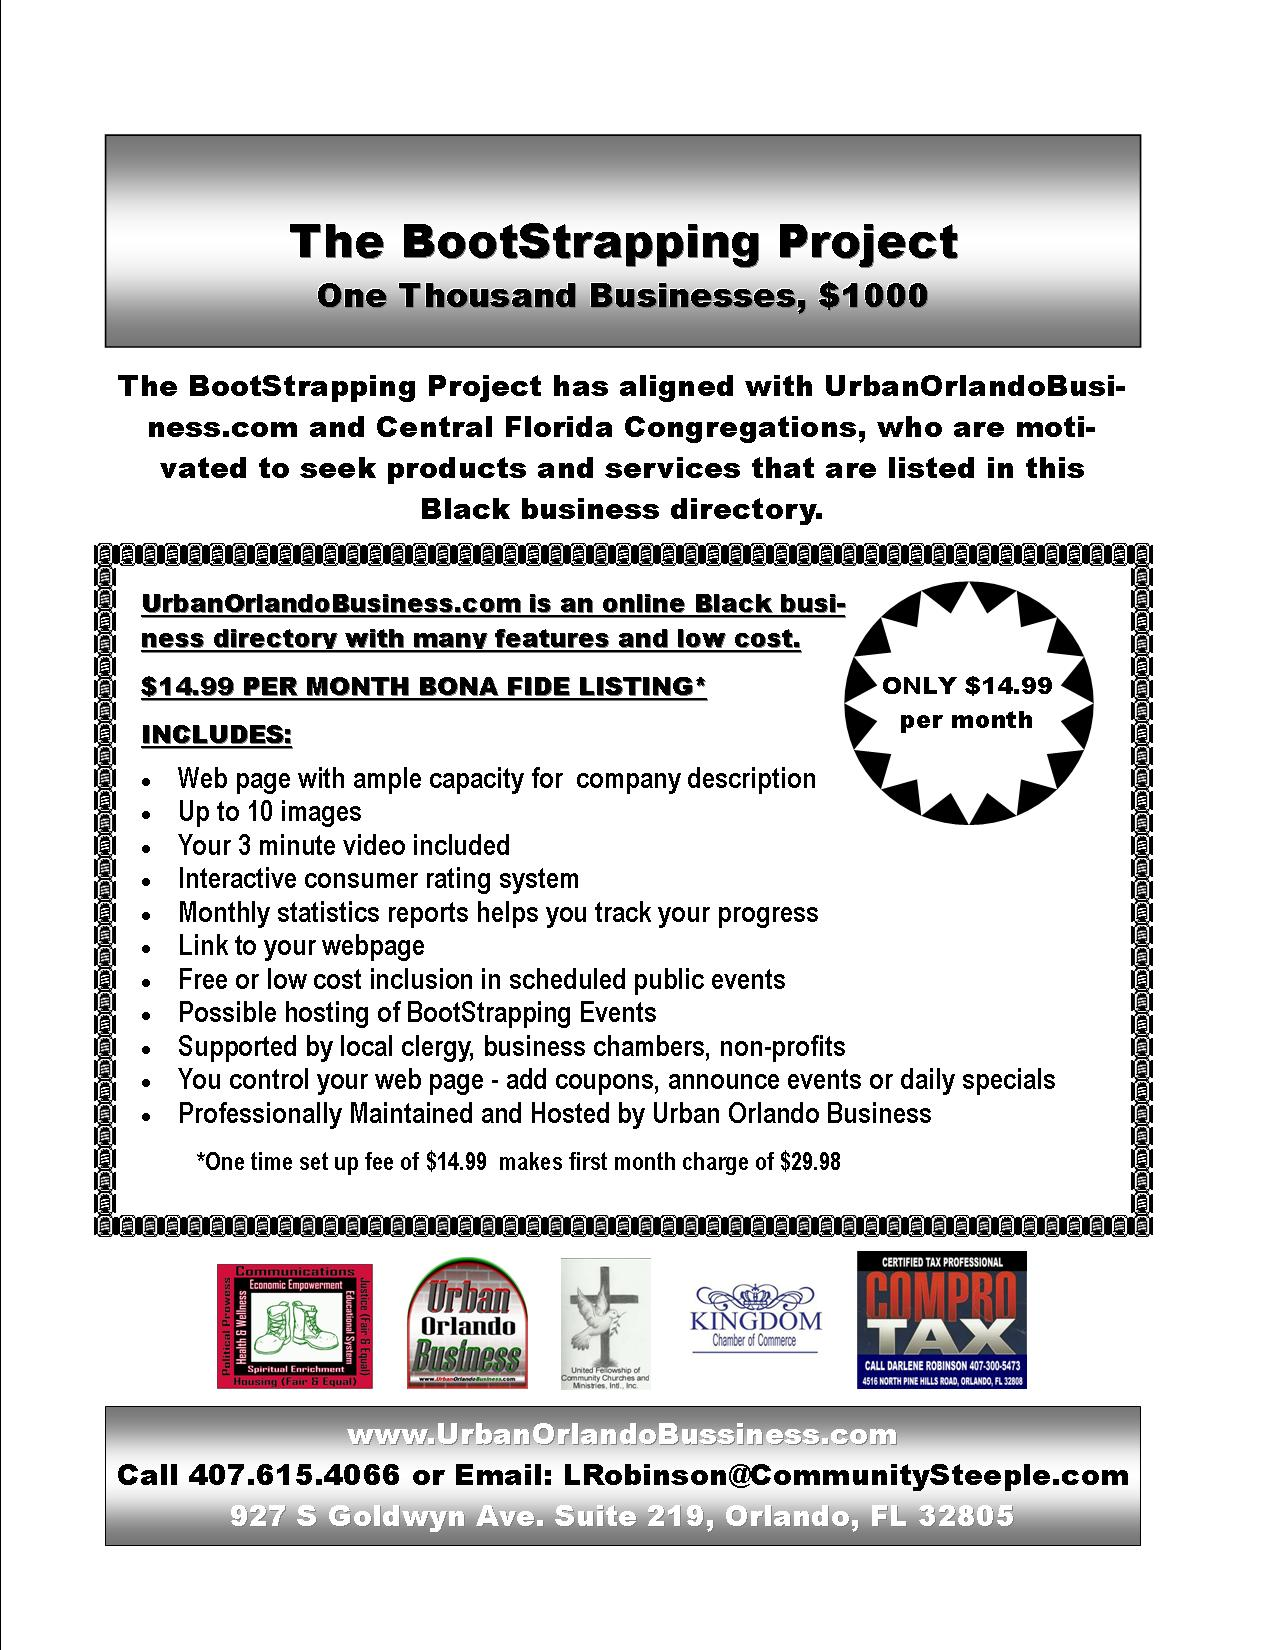 BootStrappingProject 1000X